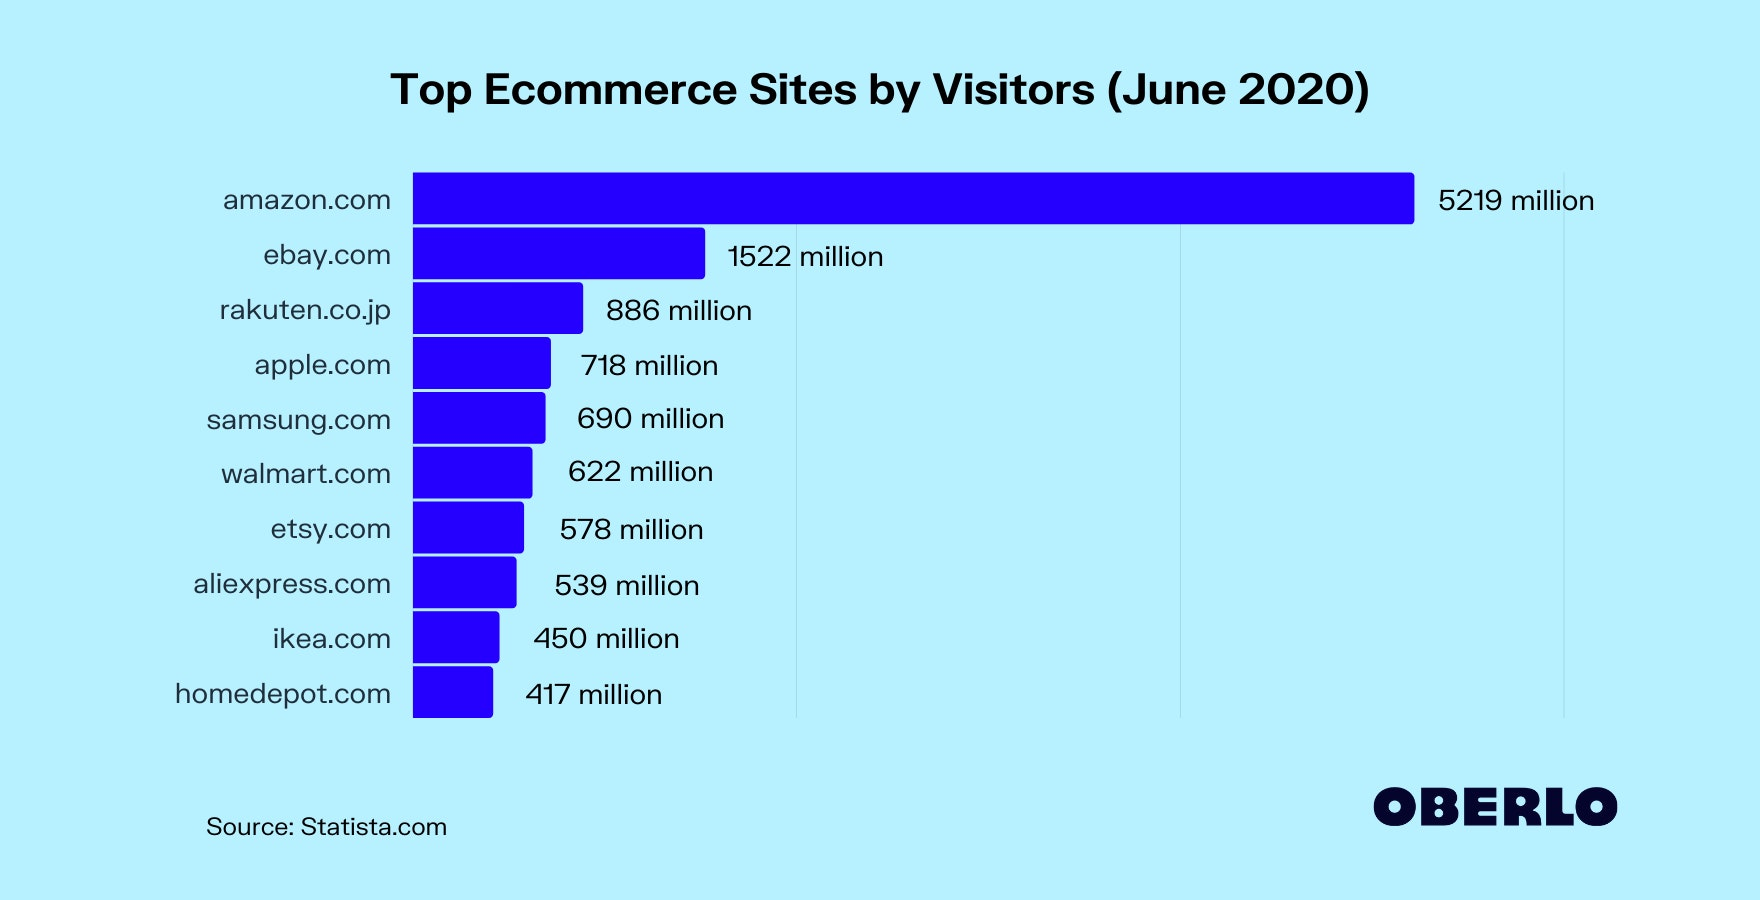 Top Ecommerce Sites by Visitors